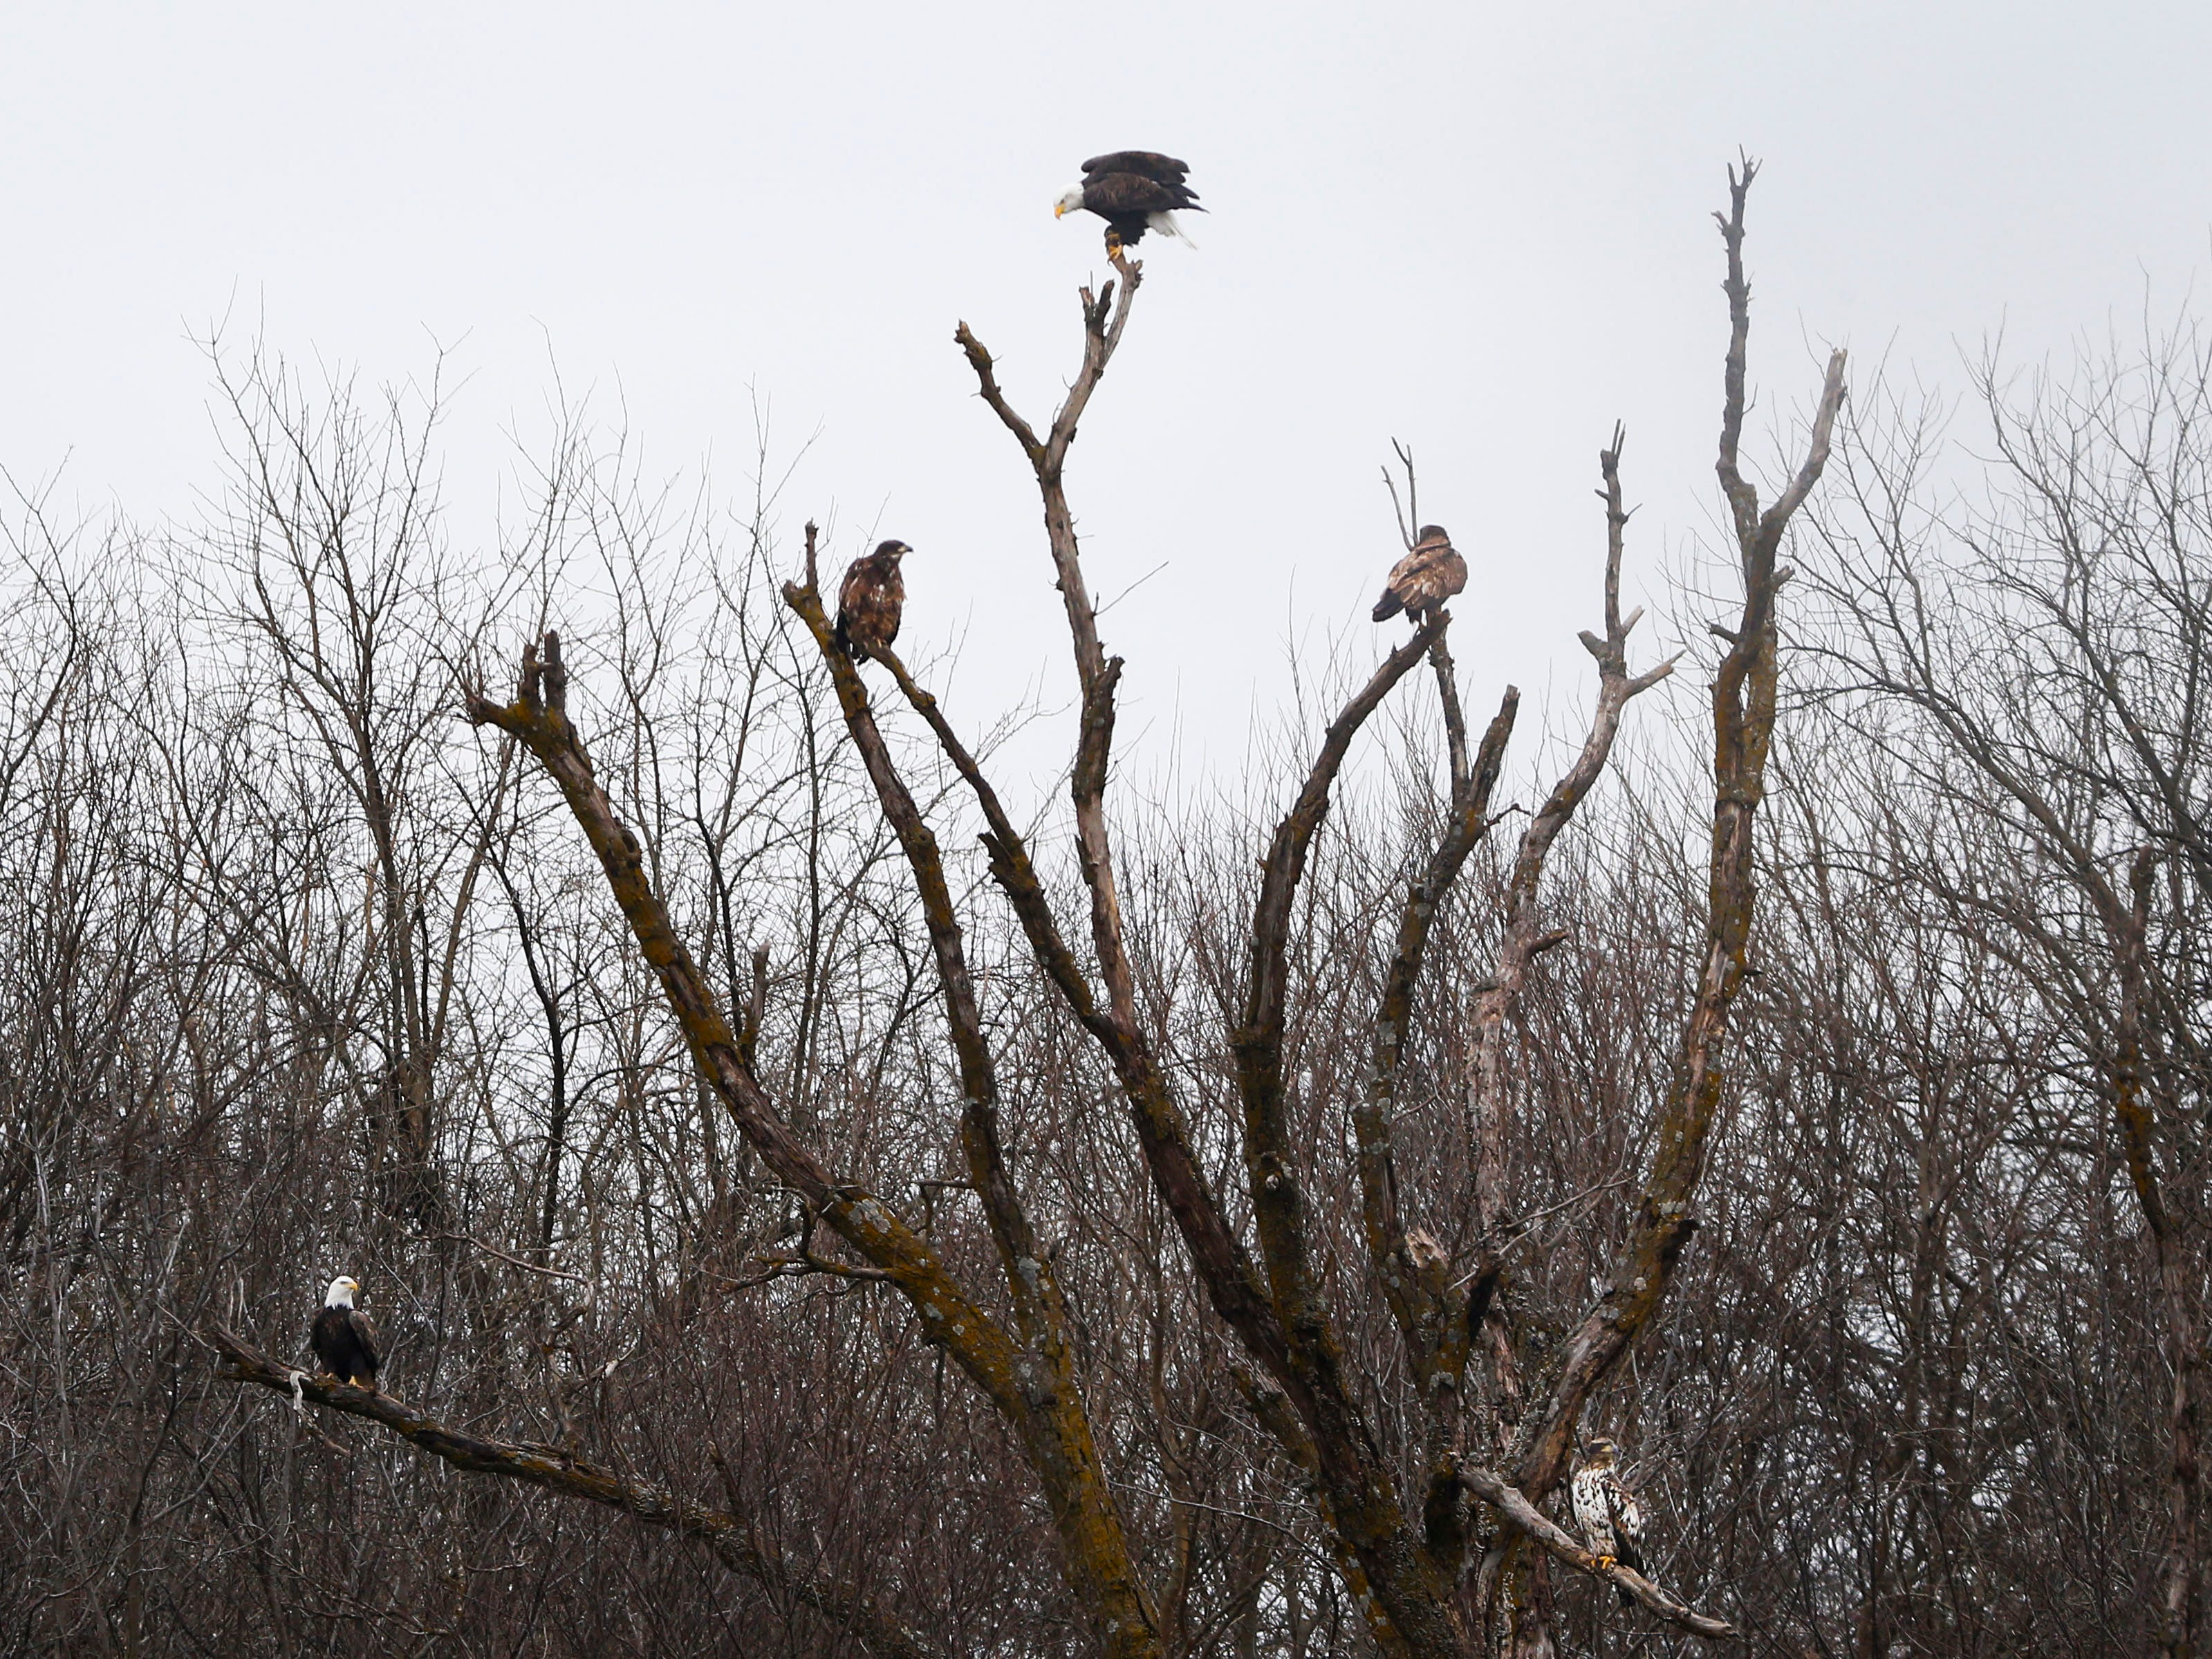 Five bald eagles, including three juvenile ones, sit perched in a tree near Stella  on Saturday, Dec. 29, 2018.